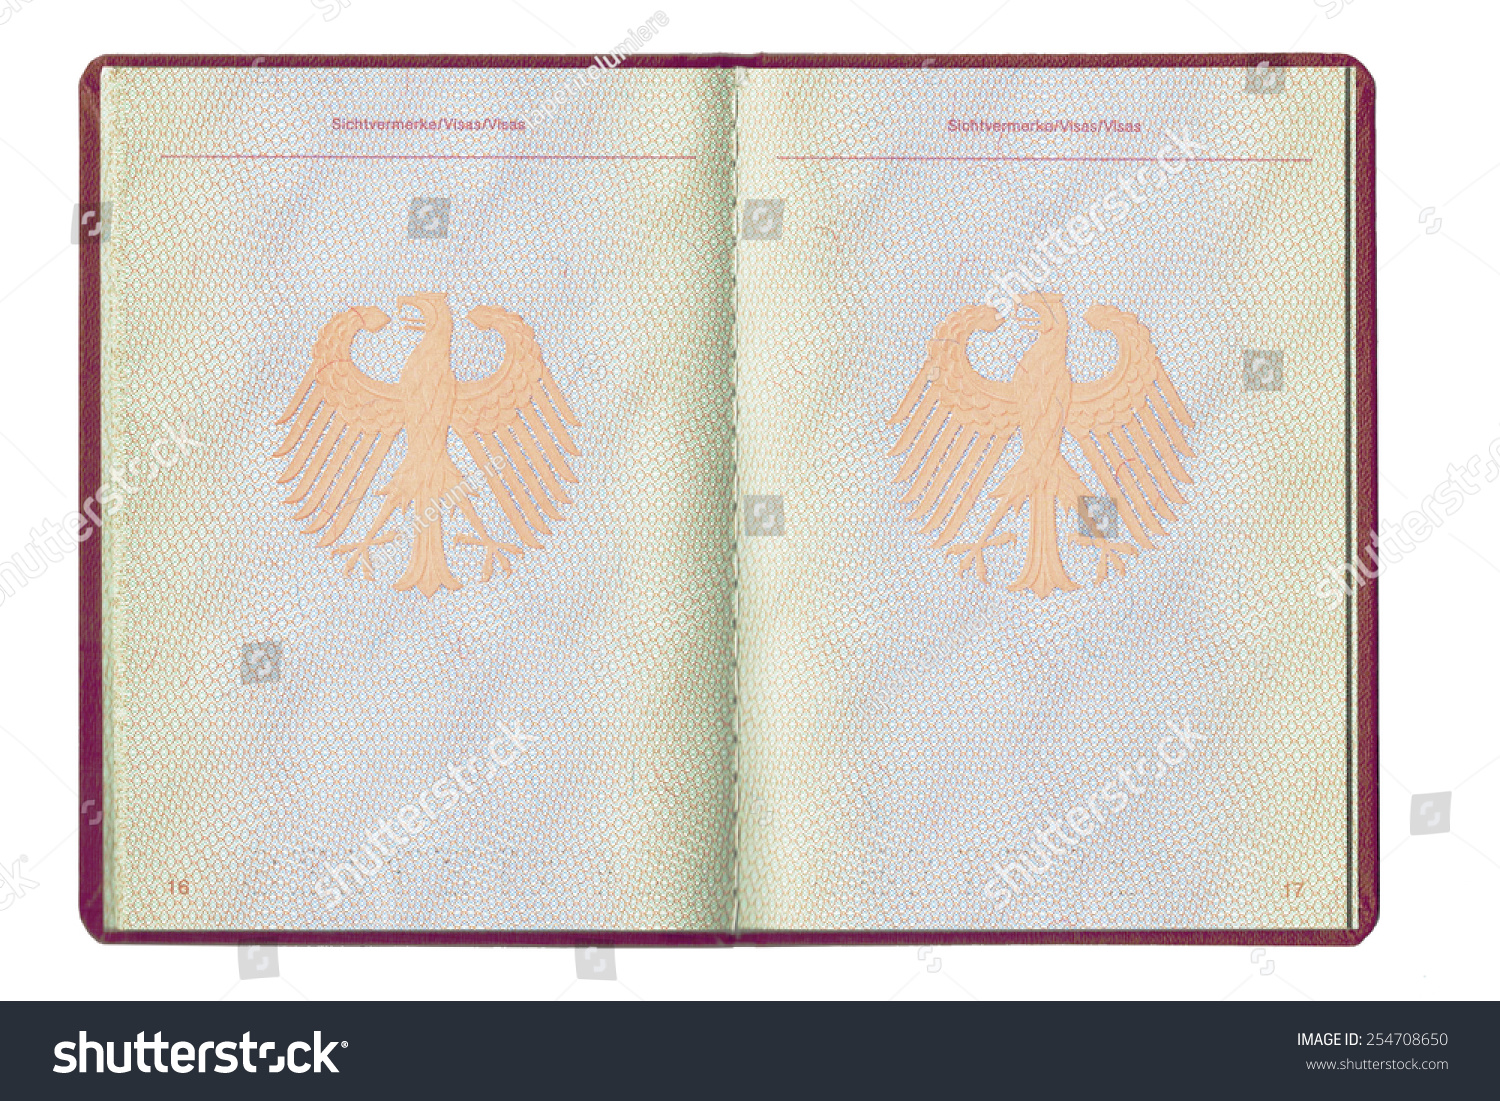 An Empty Inside Page Of A German Passport, Full Open, Blank For Visa,